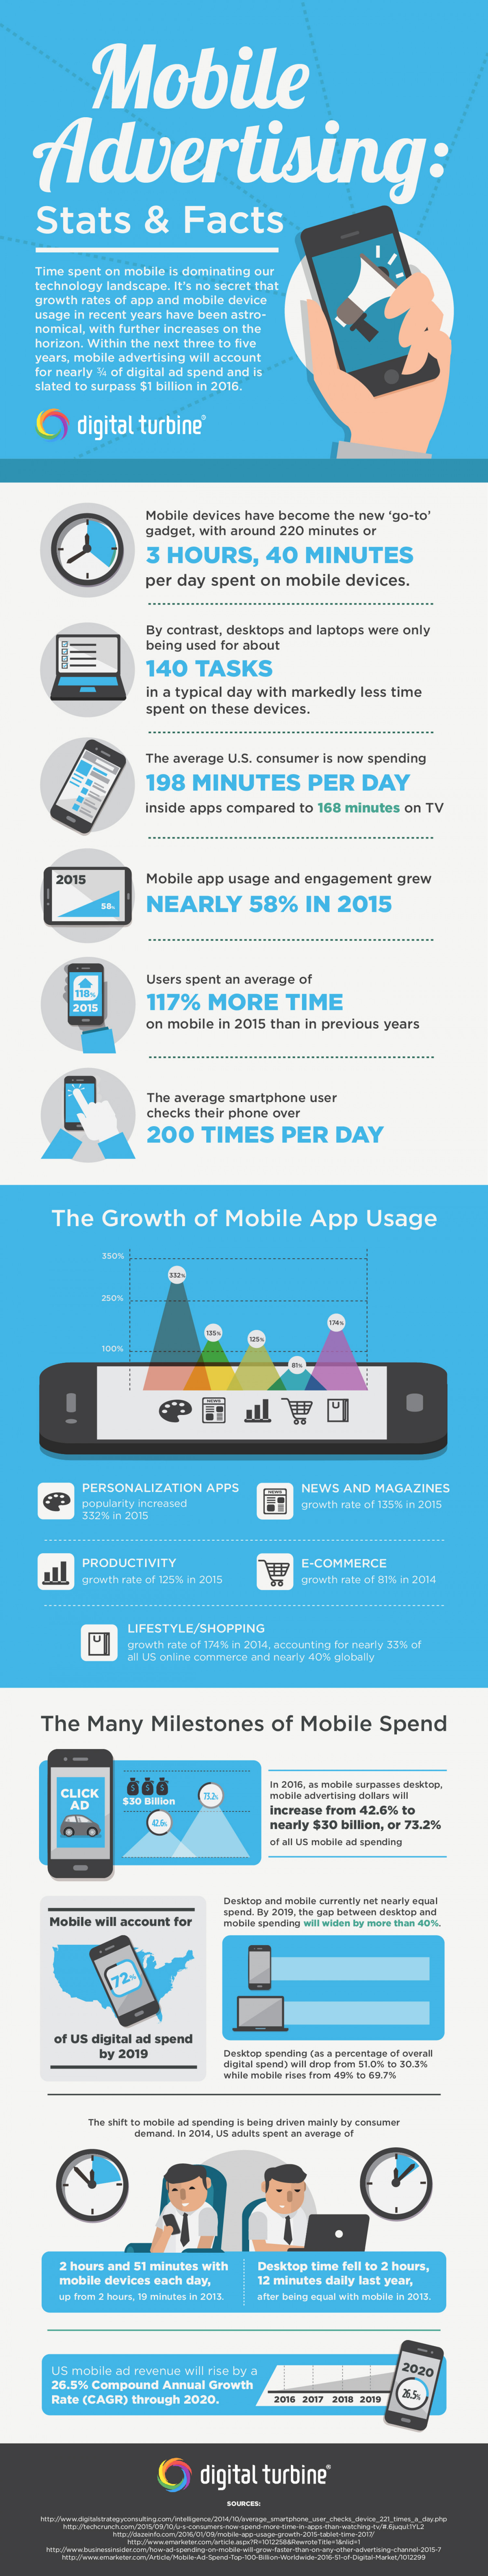 Mobile Advertising: Stats & Facts - Infographic by Digital Turbine Infographic